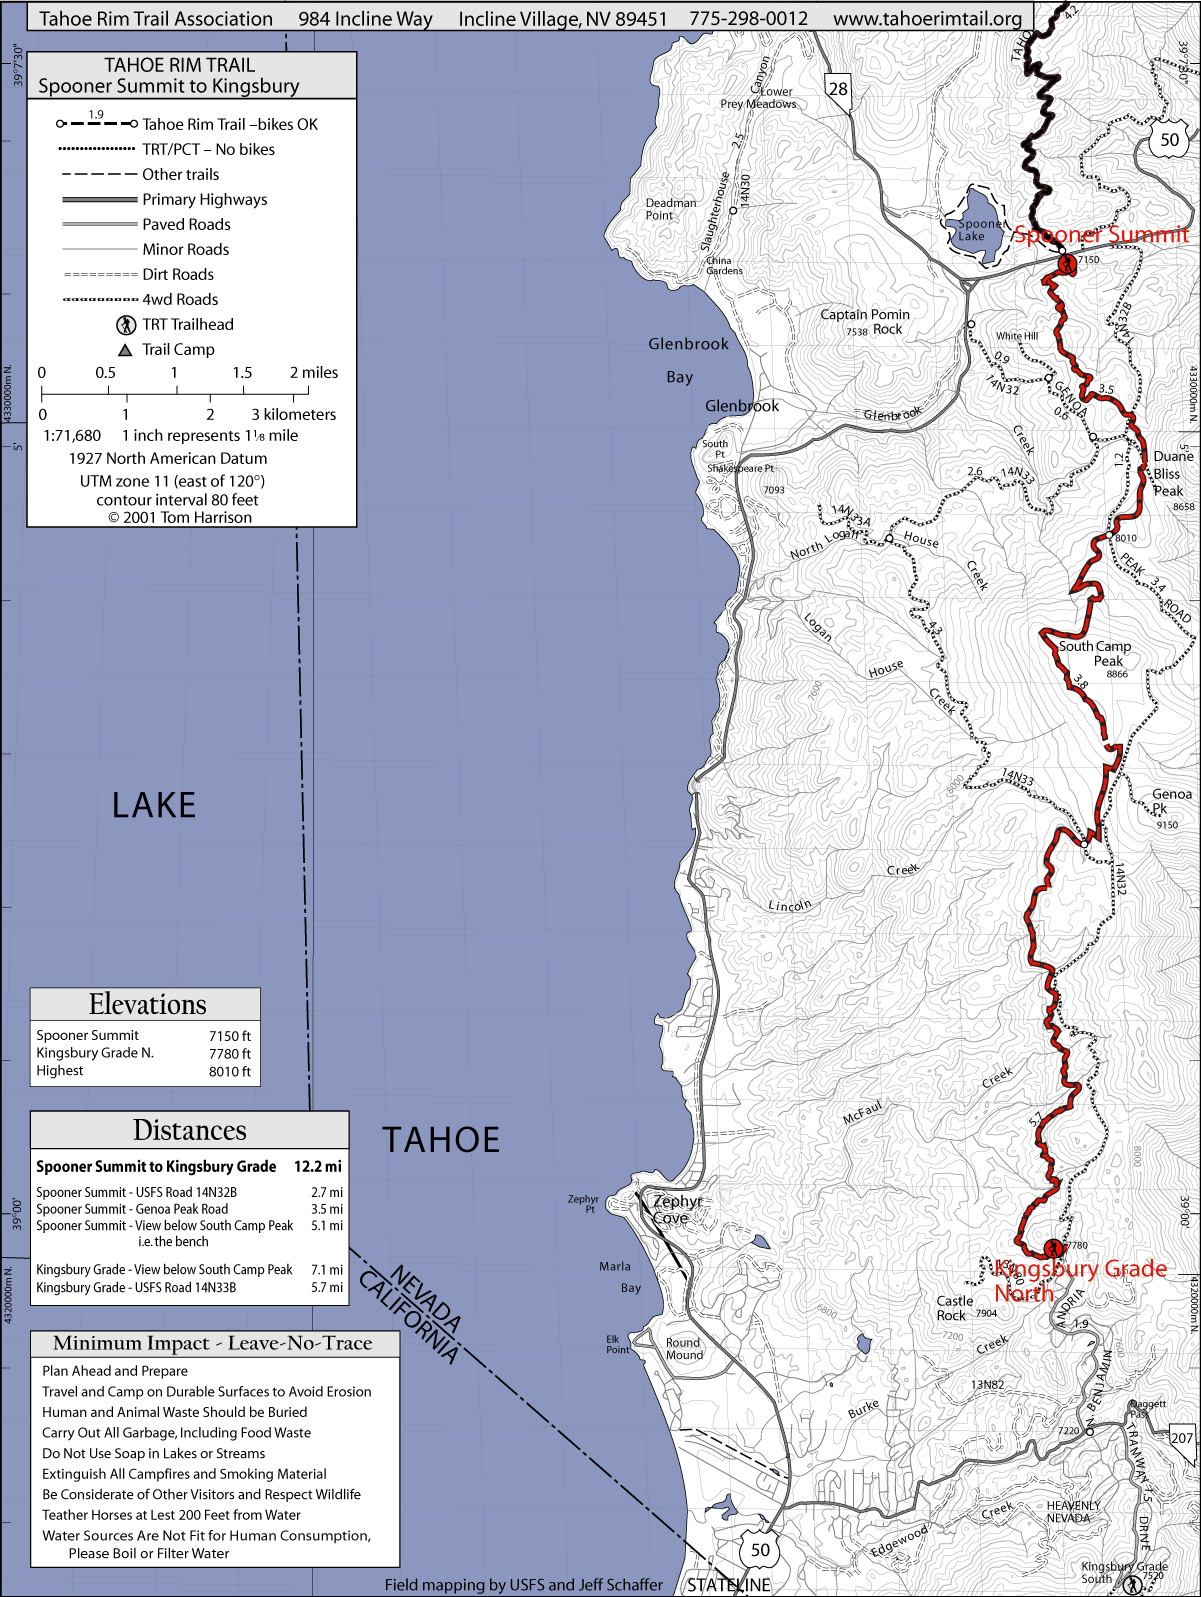 Tahoe Rim Trail Spooner Summit To Kingsbury North Lake Tahoe - Lake Tahoe California Map